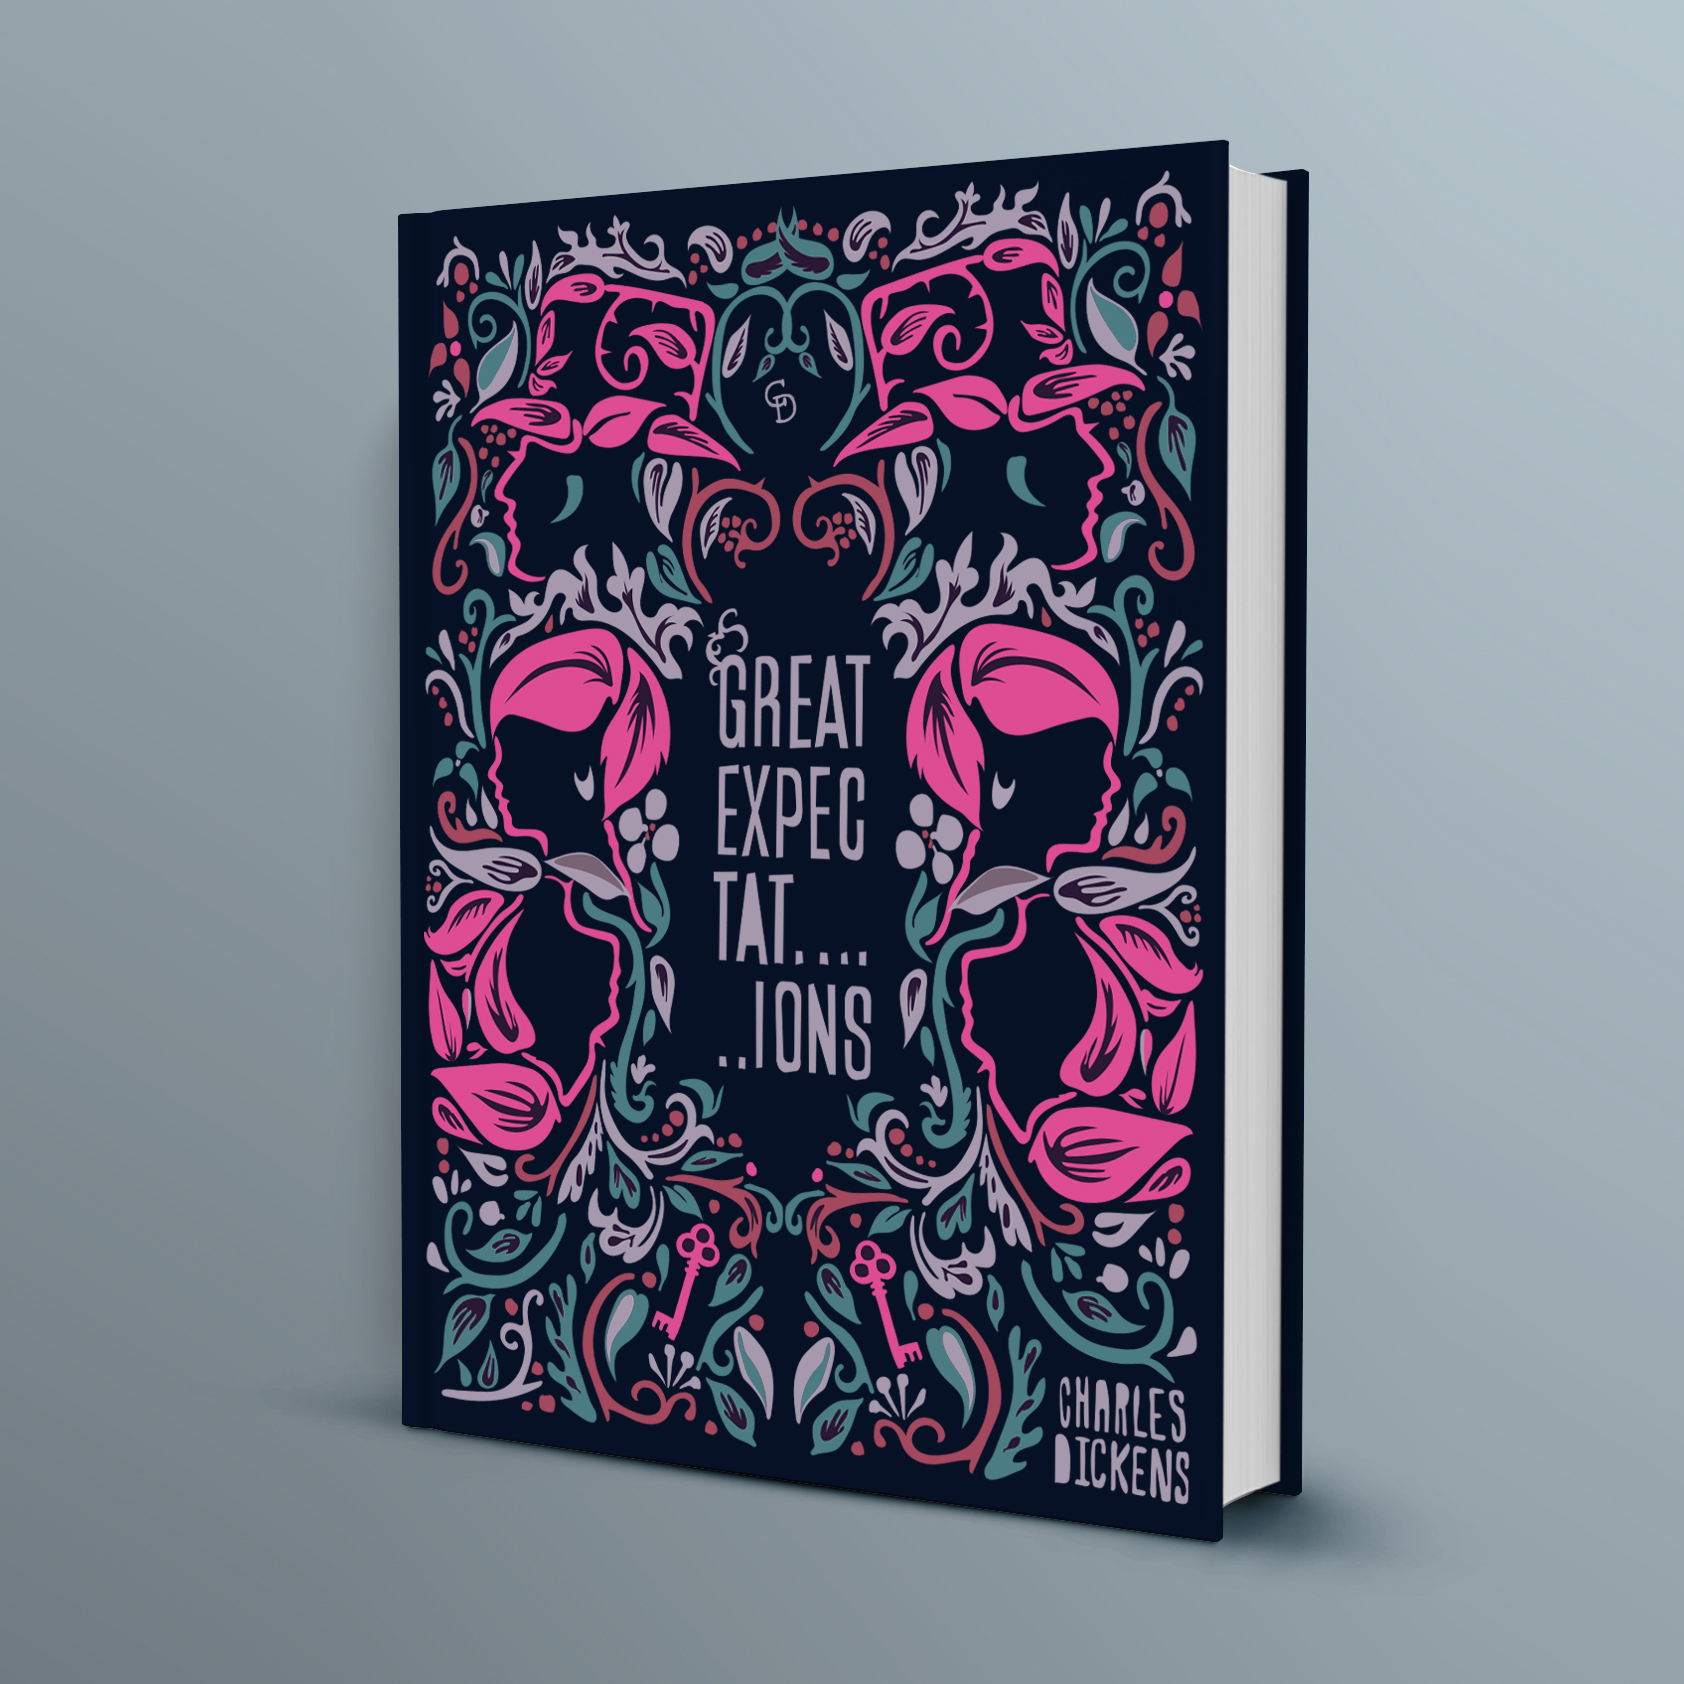 - A revamp of Great Expectations by Charles Dickens using a hand drawn William Morris inspired pattern. The Characters and the mansion key are highlighted in a vibrant hot pink to modernise the design. Title and author are also hand drawn to maintain the illustrative approach.